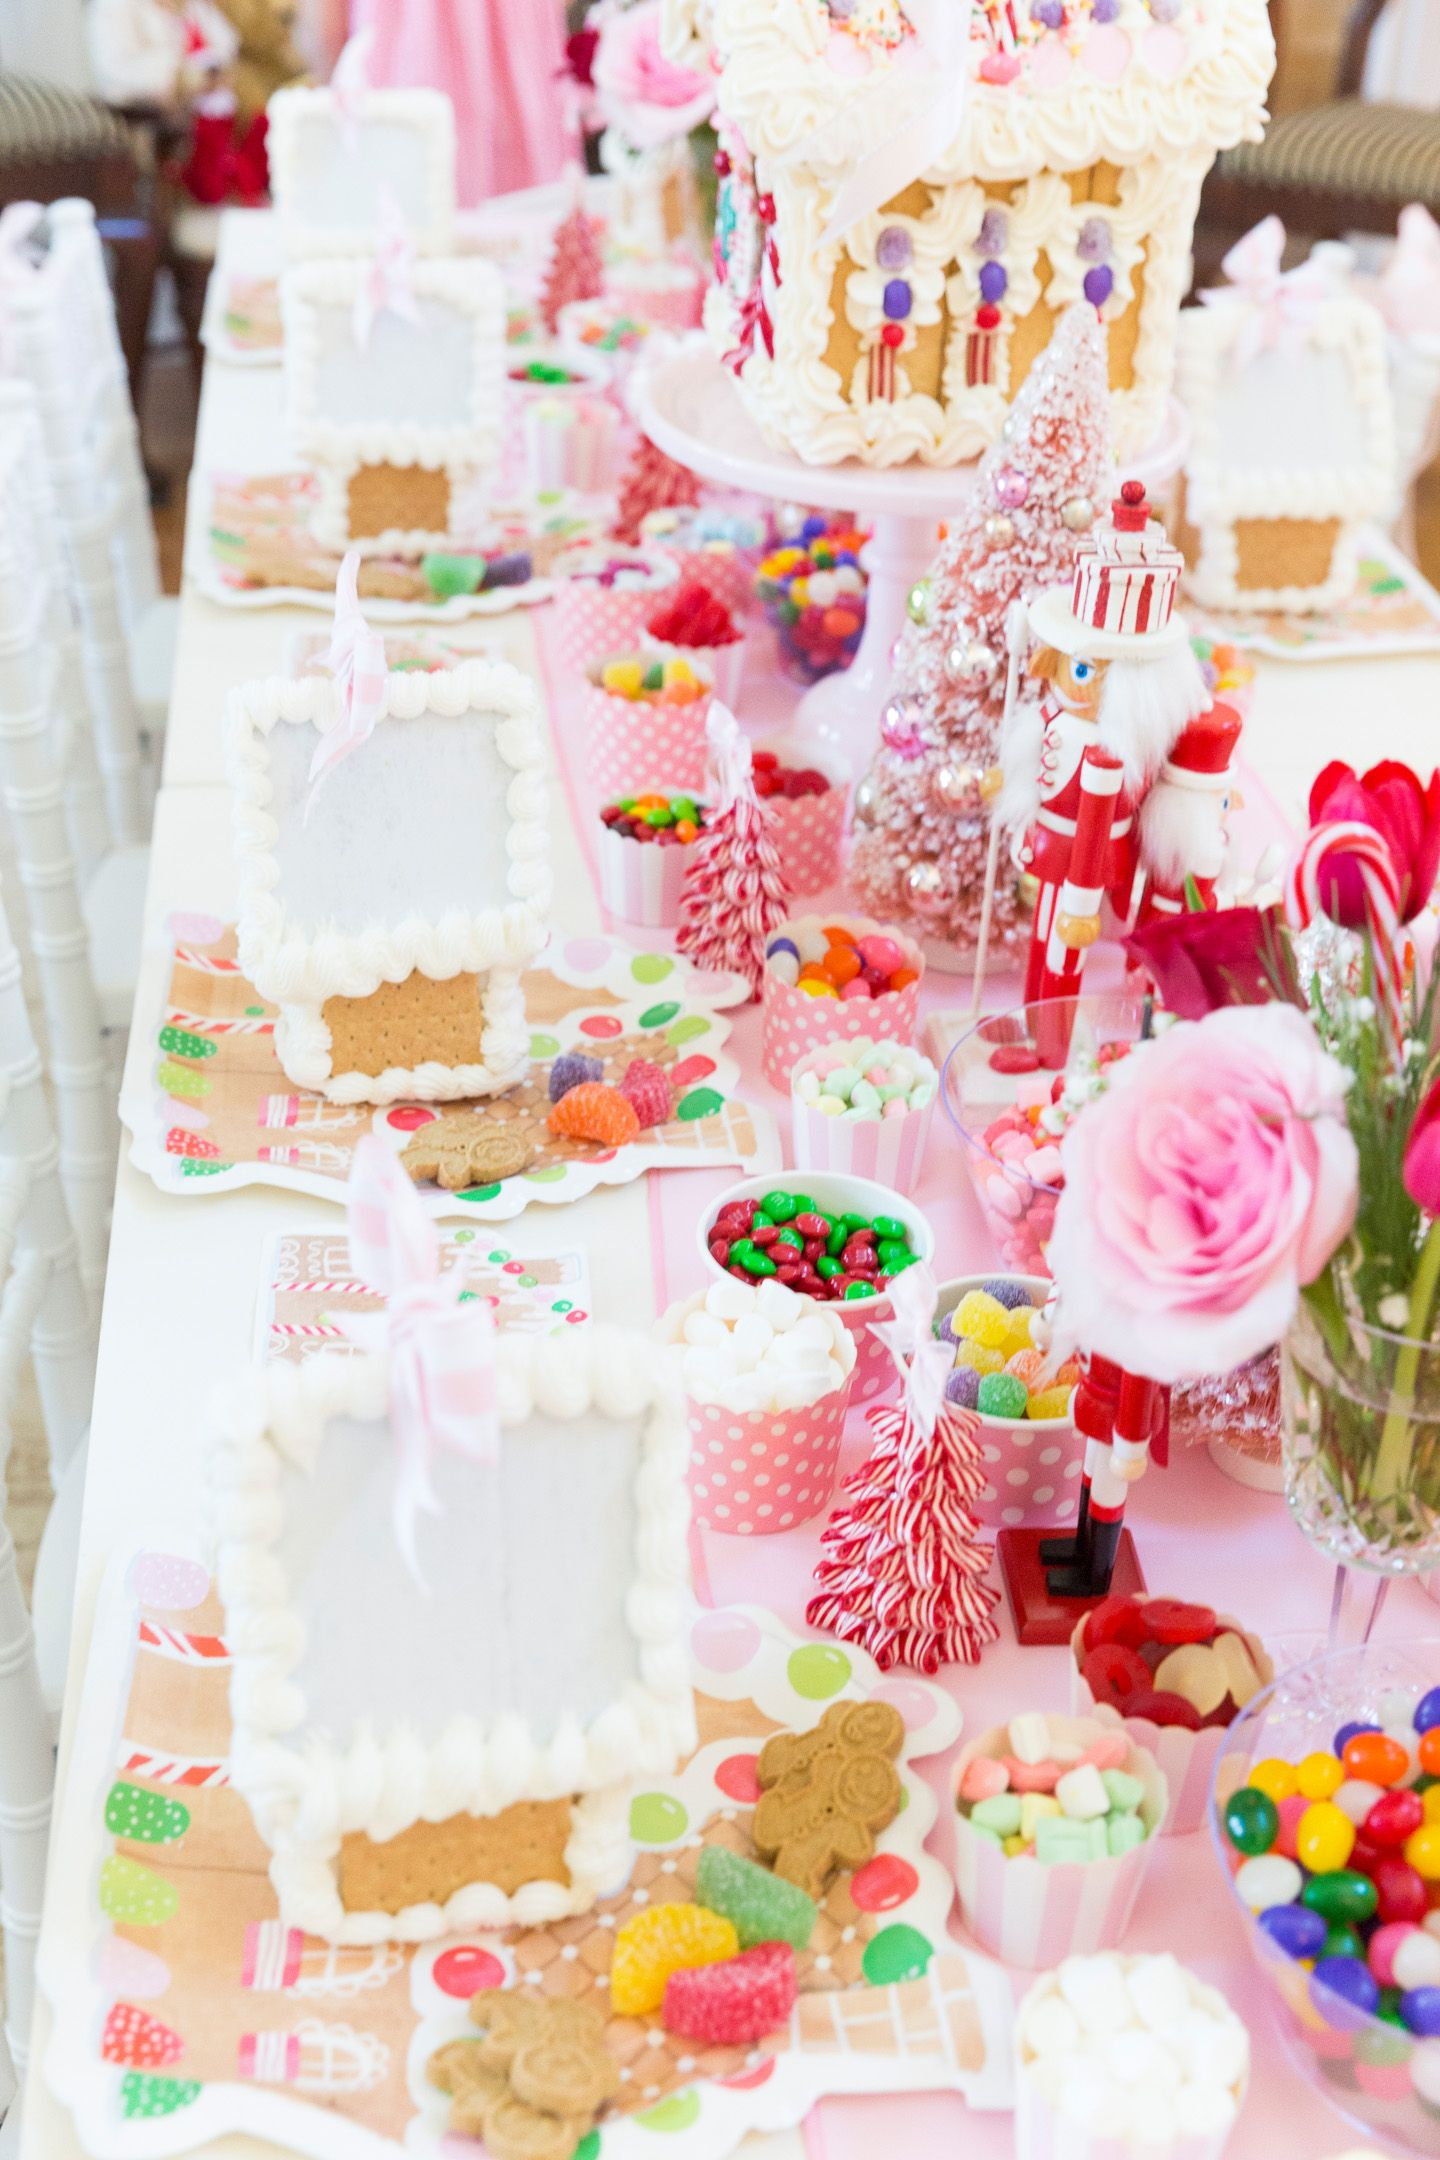 Garden party inspiration  Blakelyus nd Annual Gingerbread House Tea Party  Party Ideas